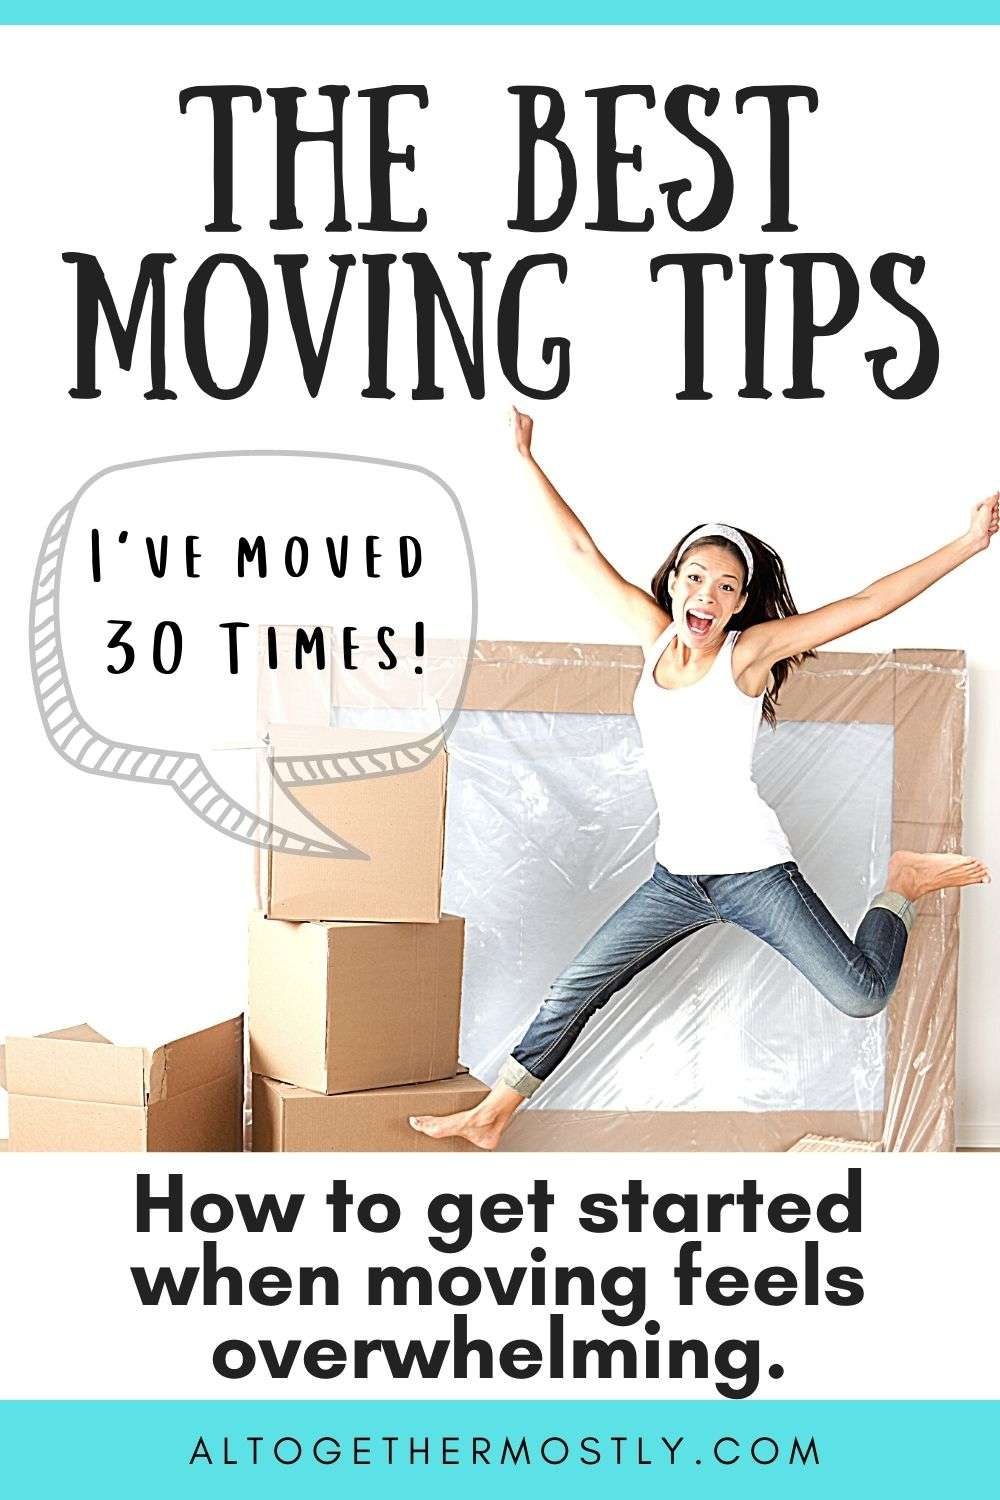 The Benefits Of Moving Tips